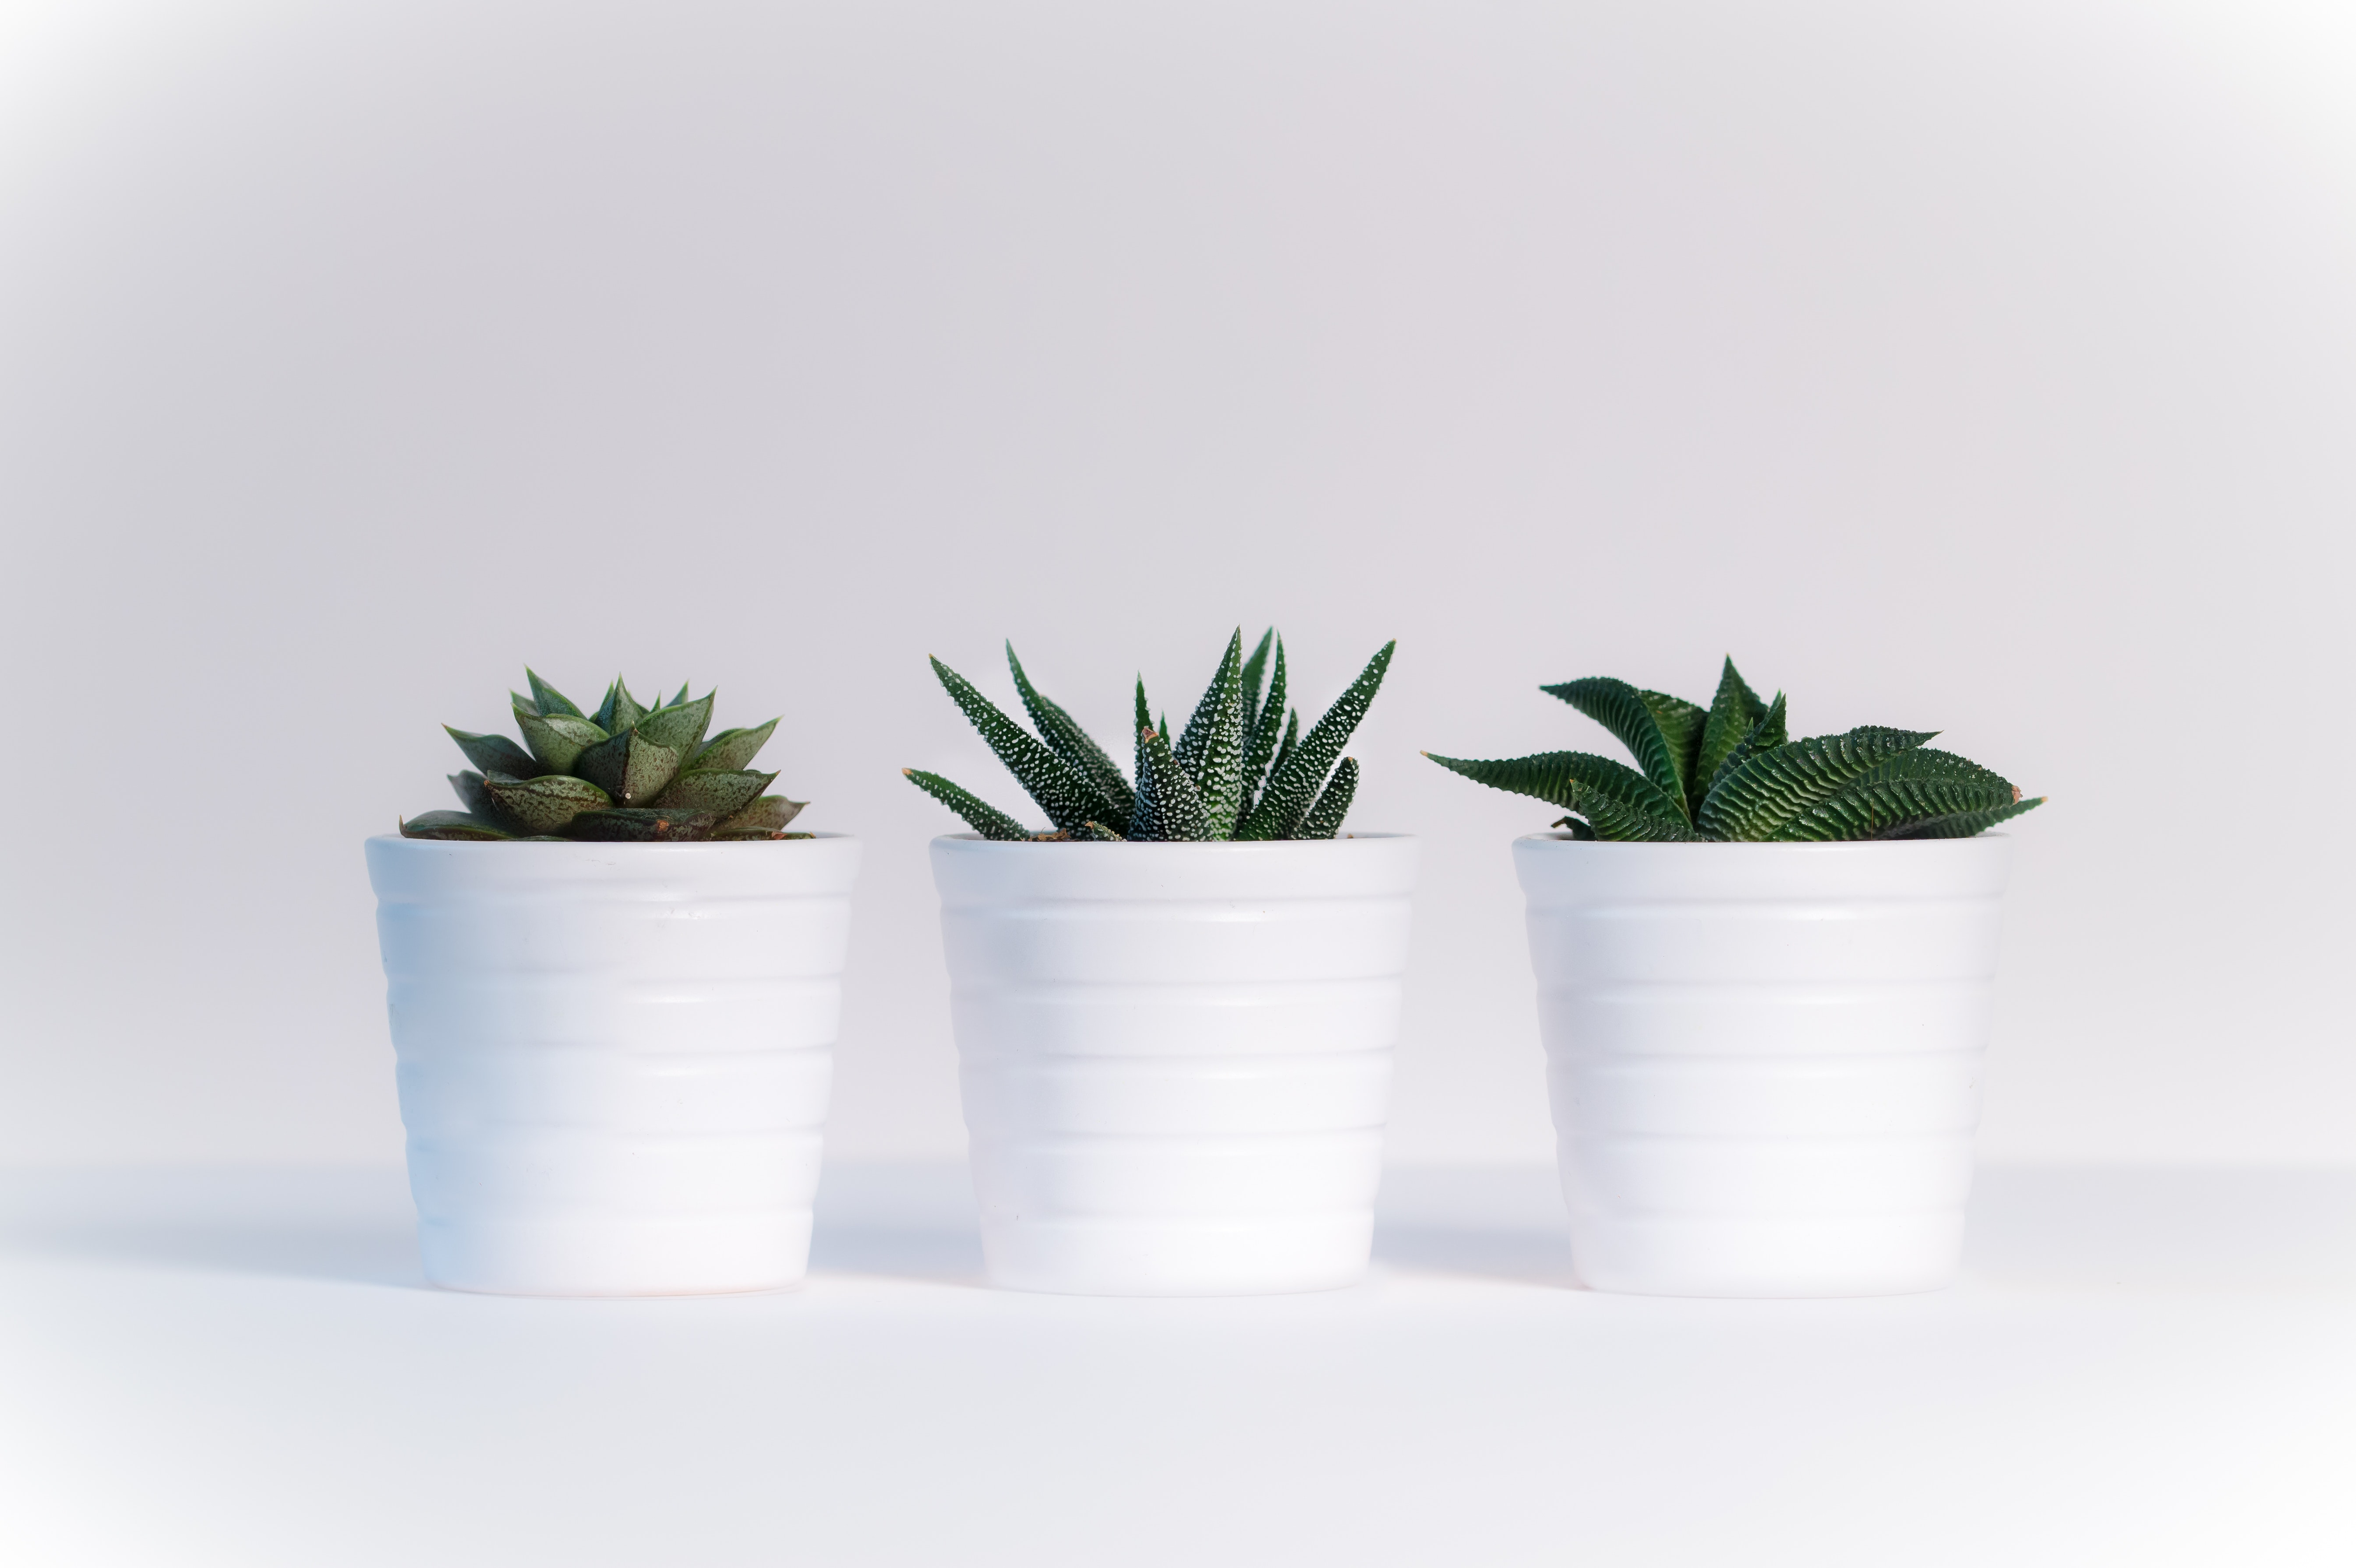 Three green assorted plants in white ceramic pots photo